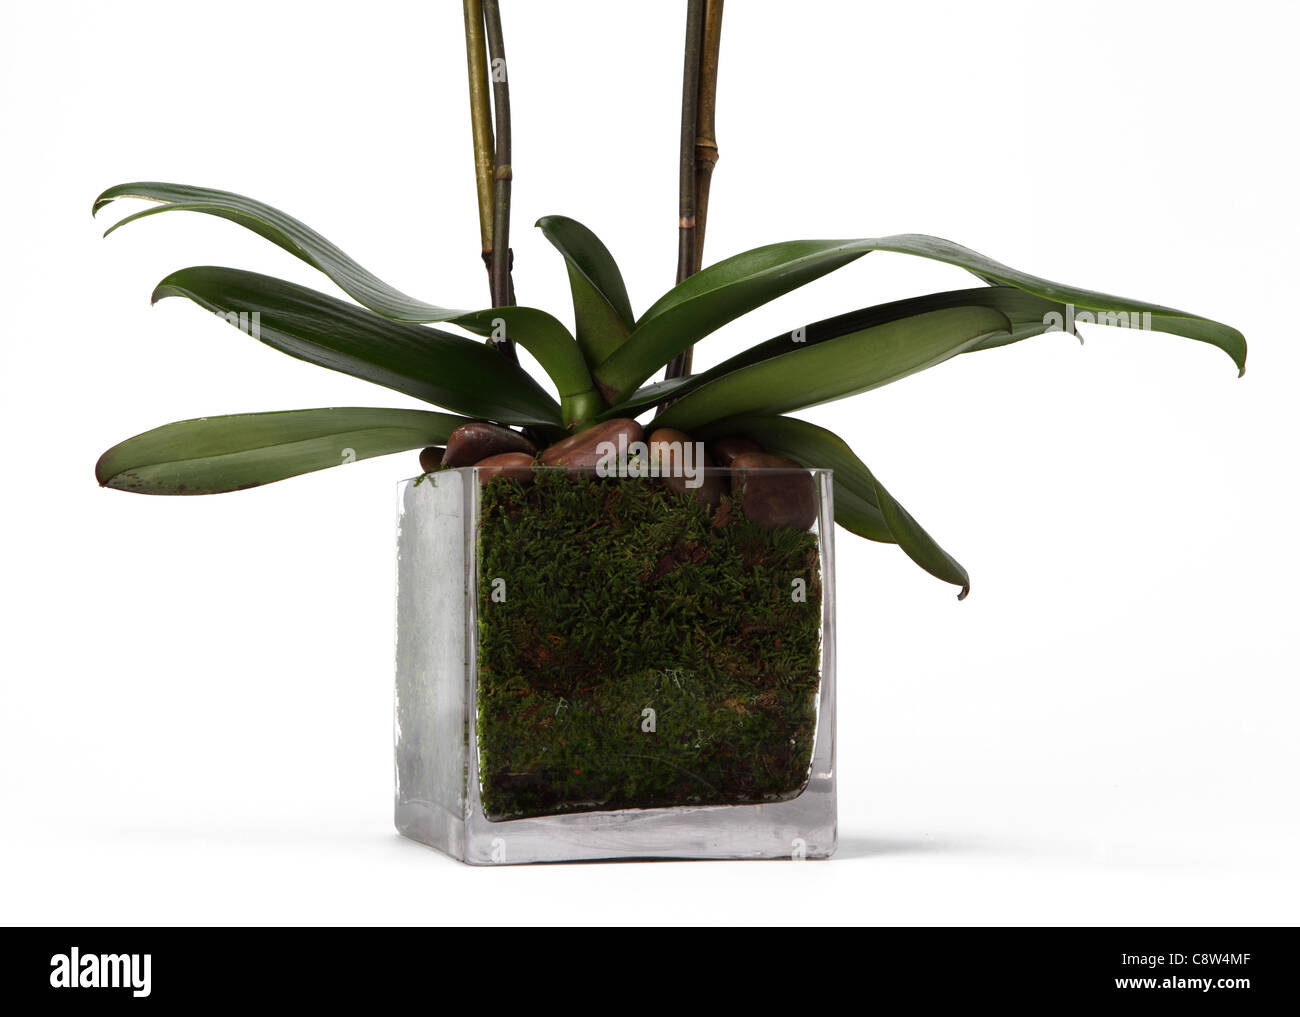 The bottom of an orchid plant in glass vase. - Stock Image